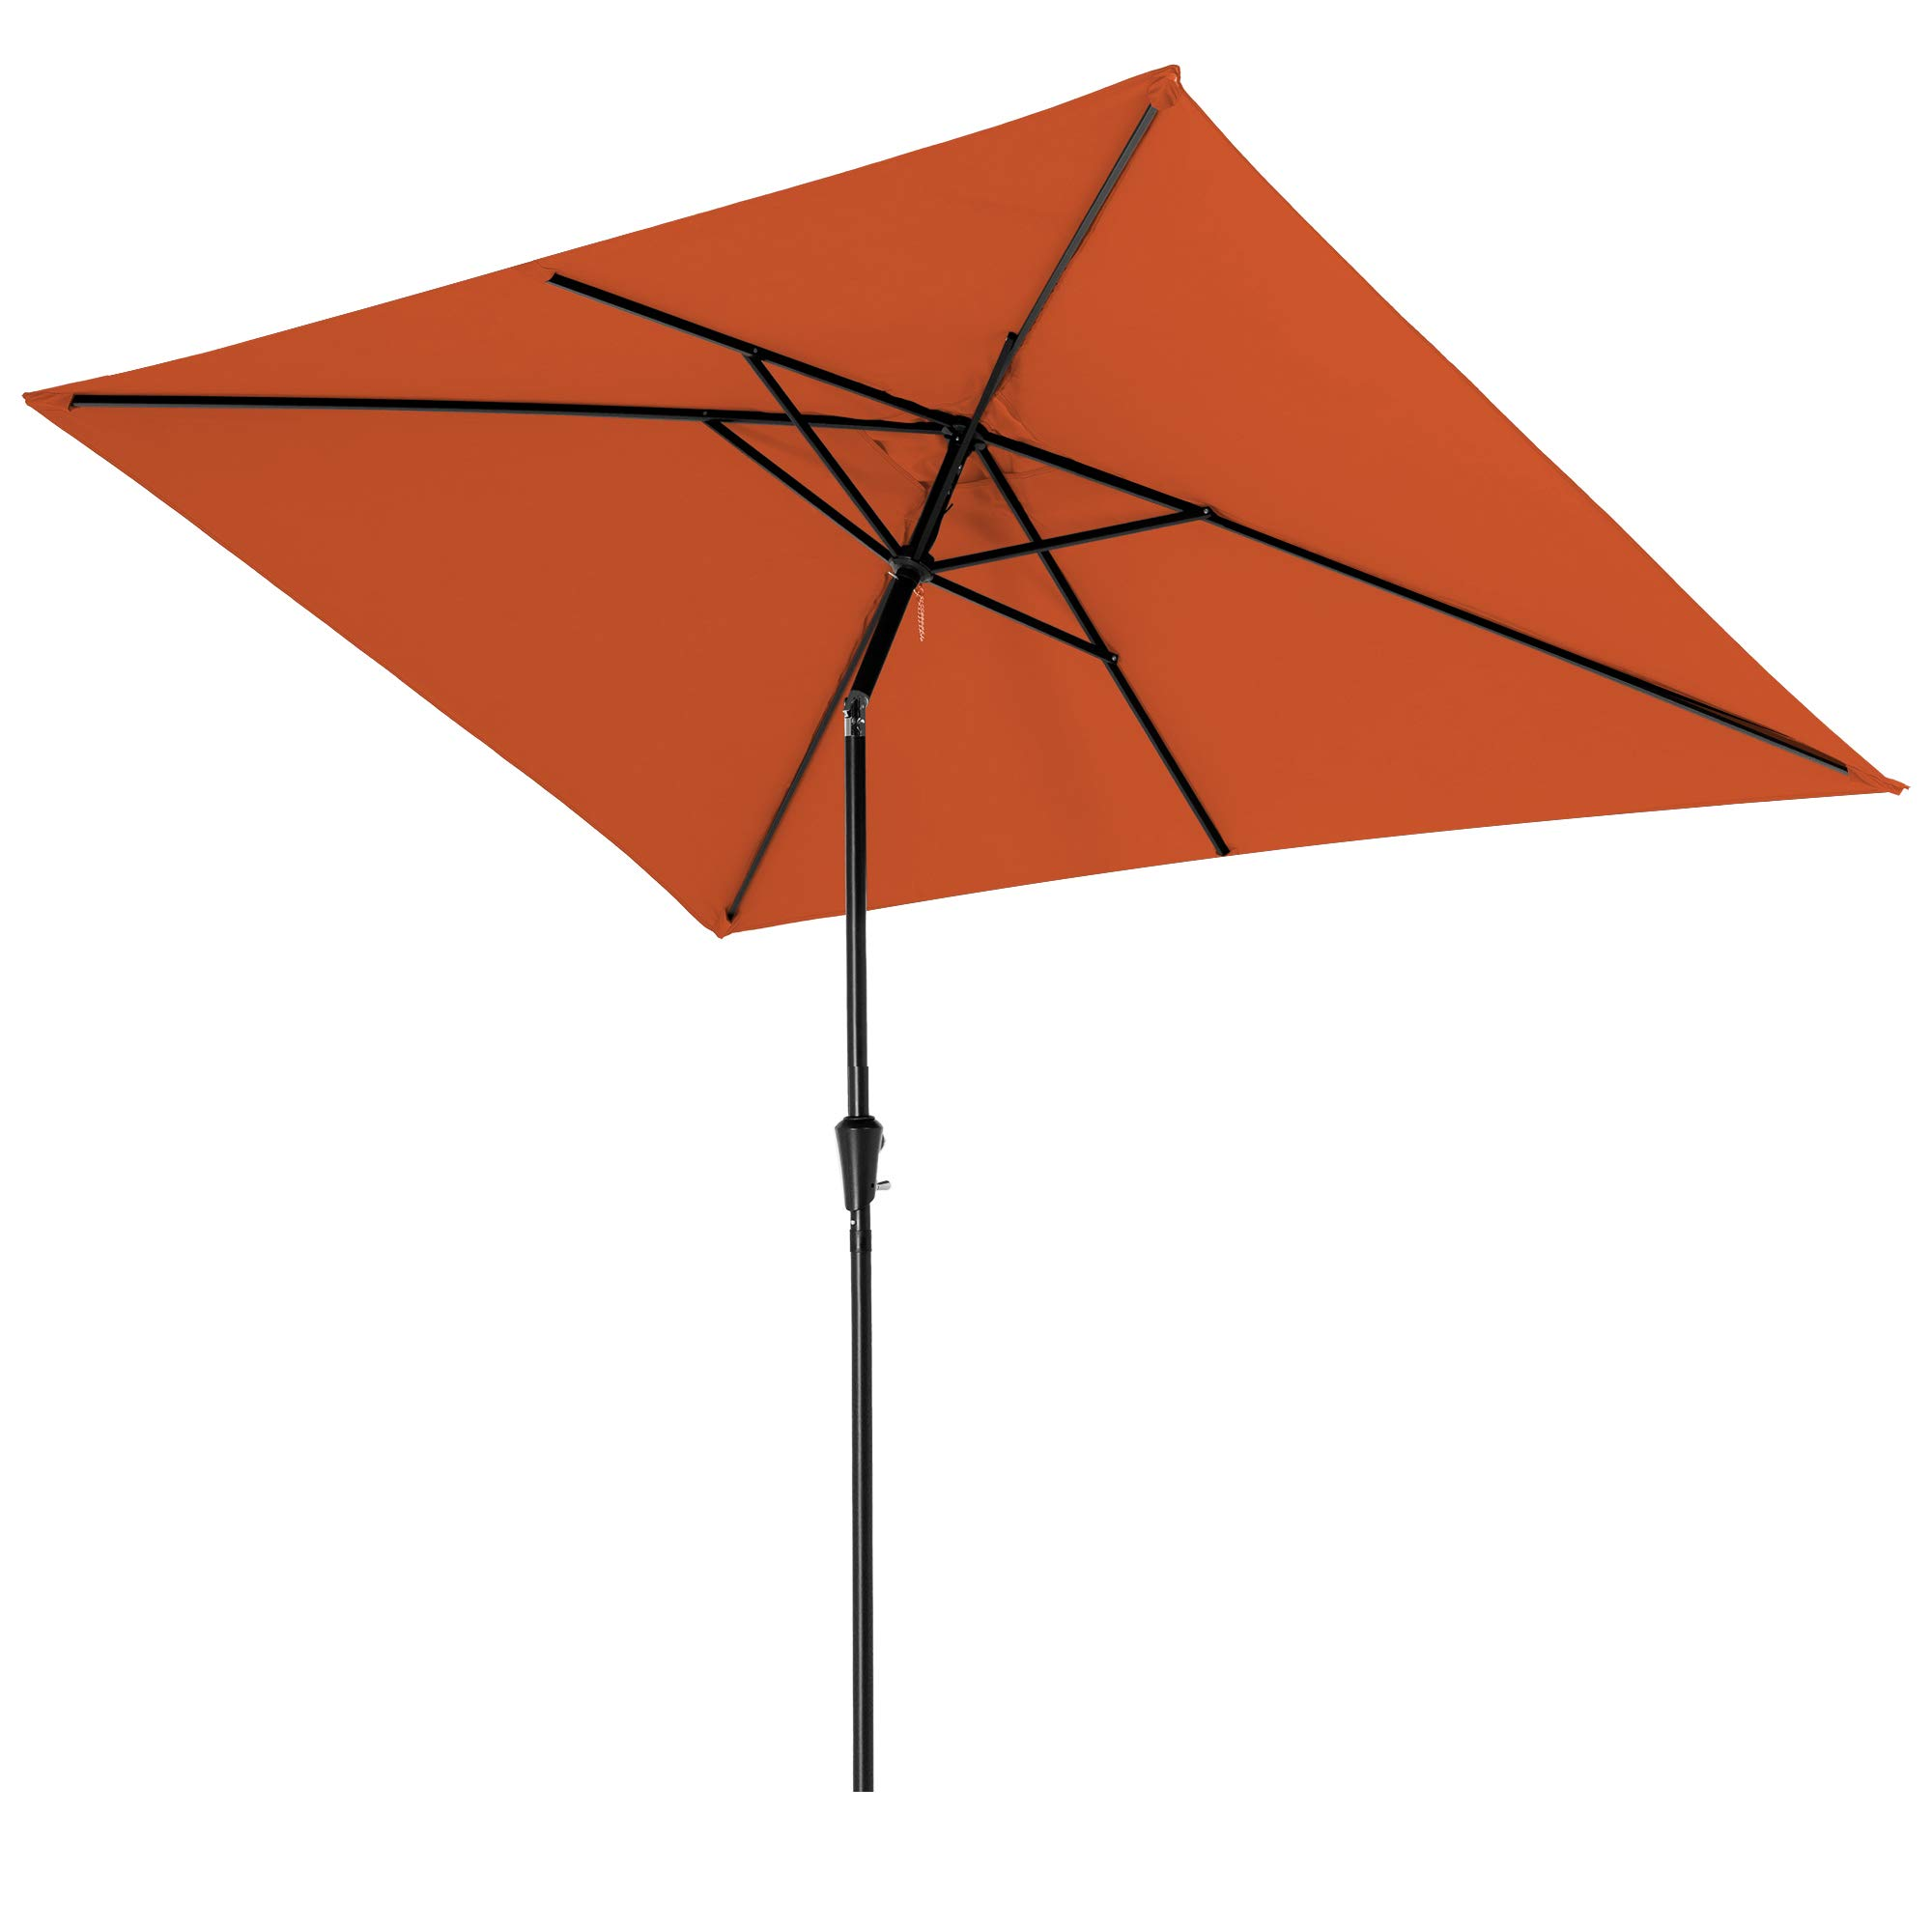 ROWHY 6.5 x 10ft Rectangular Patio Umbrella Outdoor Table Umbrella Market Umbrella with Push Button Tilt and Crank Portable Garden Sunshade UV Protection Waterproof for Lawn Garden, Orange